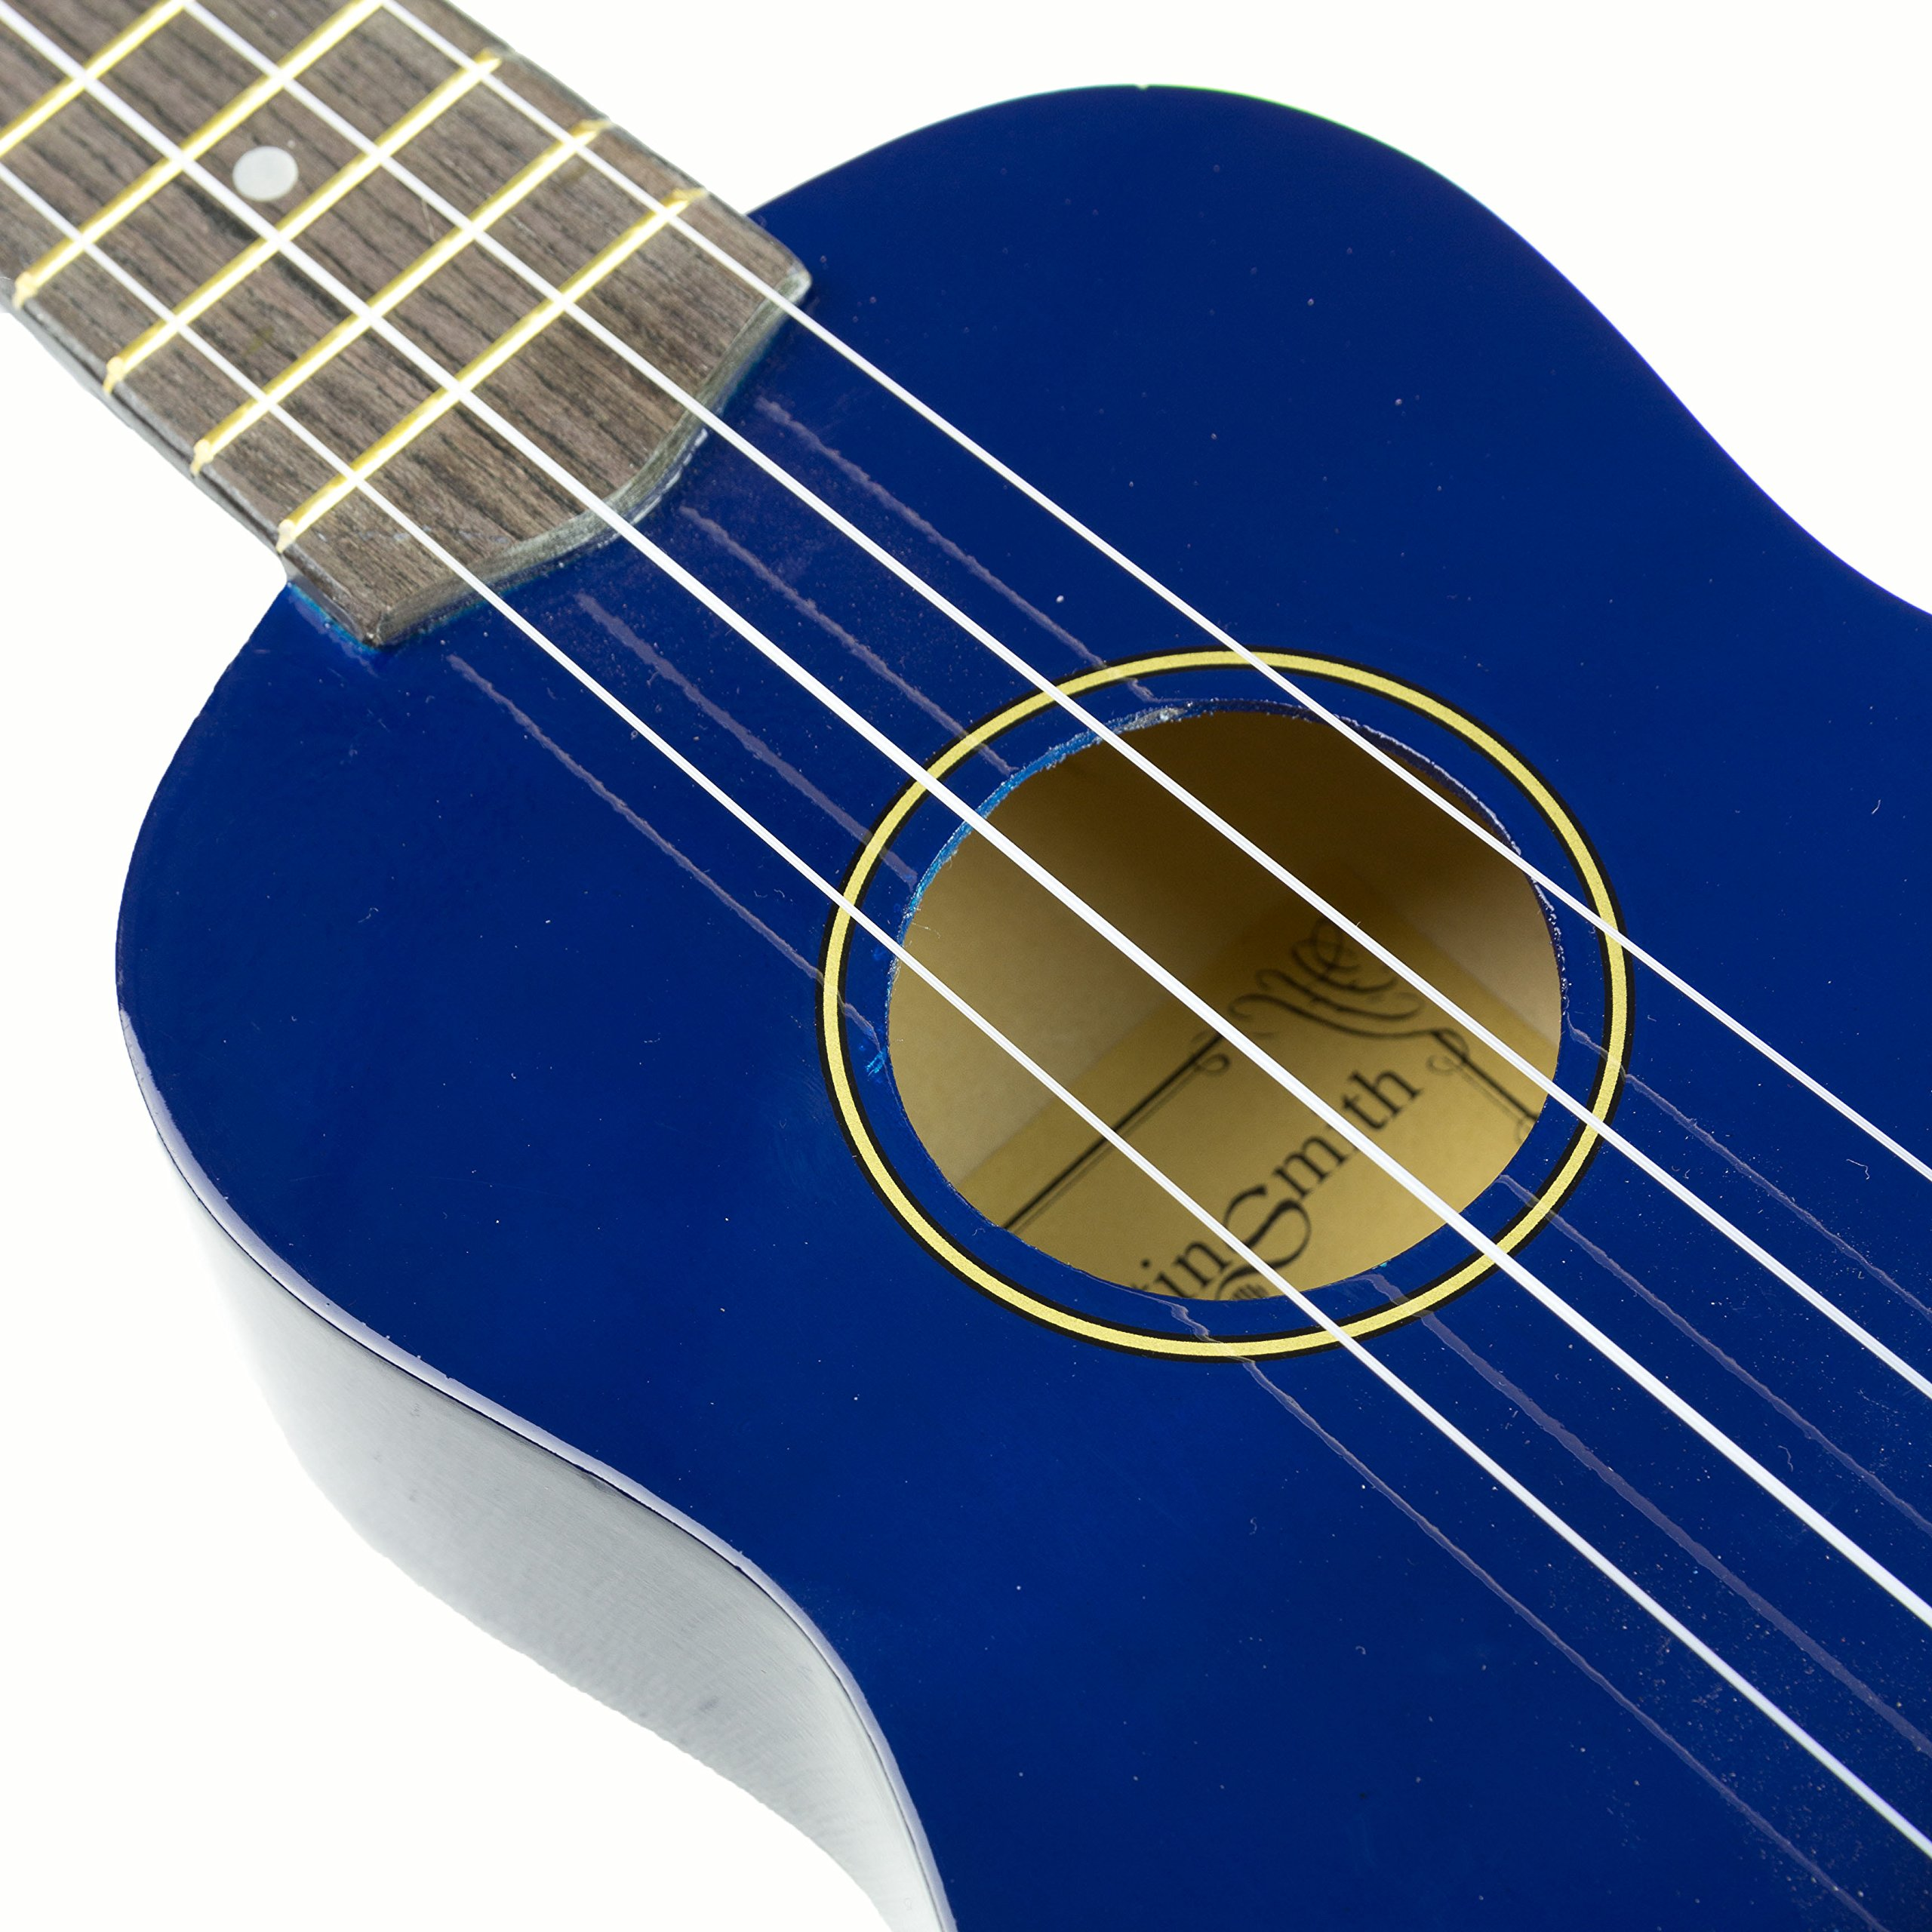 Martin Smith UK-312-BL - Kit de inicio de ukelele, color azul ...